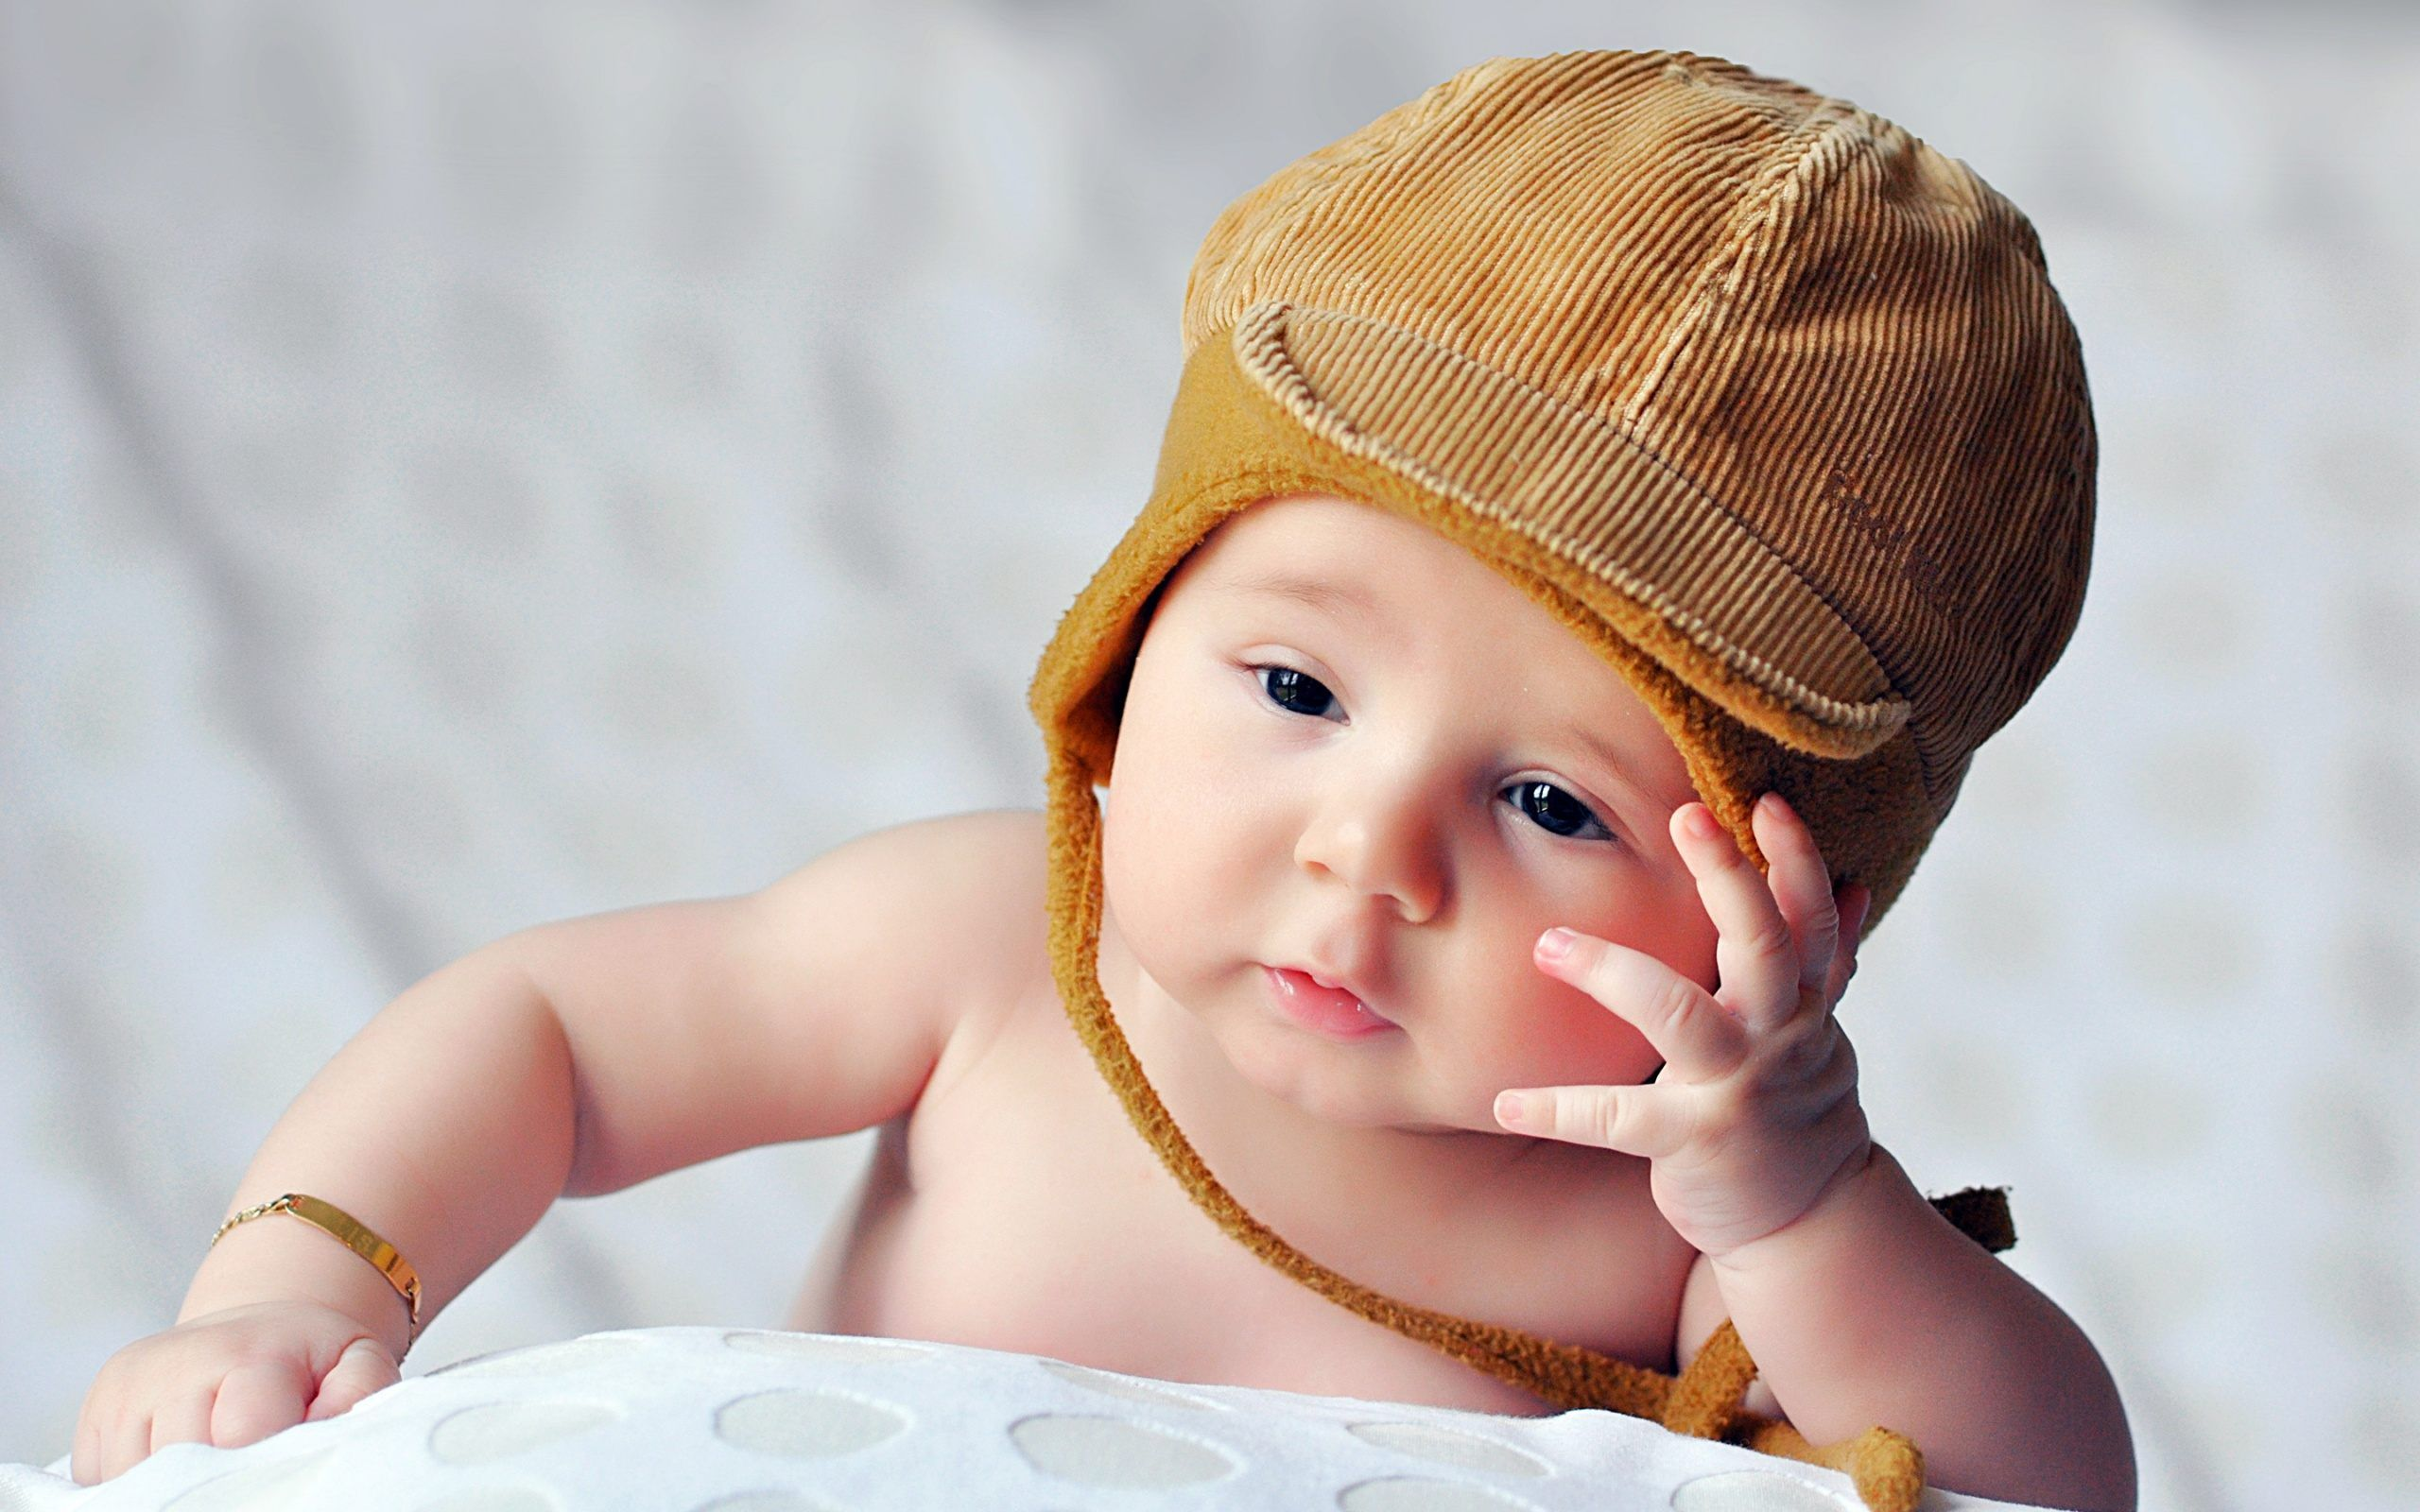 Awesome Love Quotes Hd Wallpapers 01 Infant Baby Picture Sleeping Baby Wallpaper Cute Baby